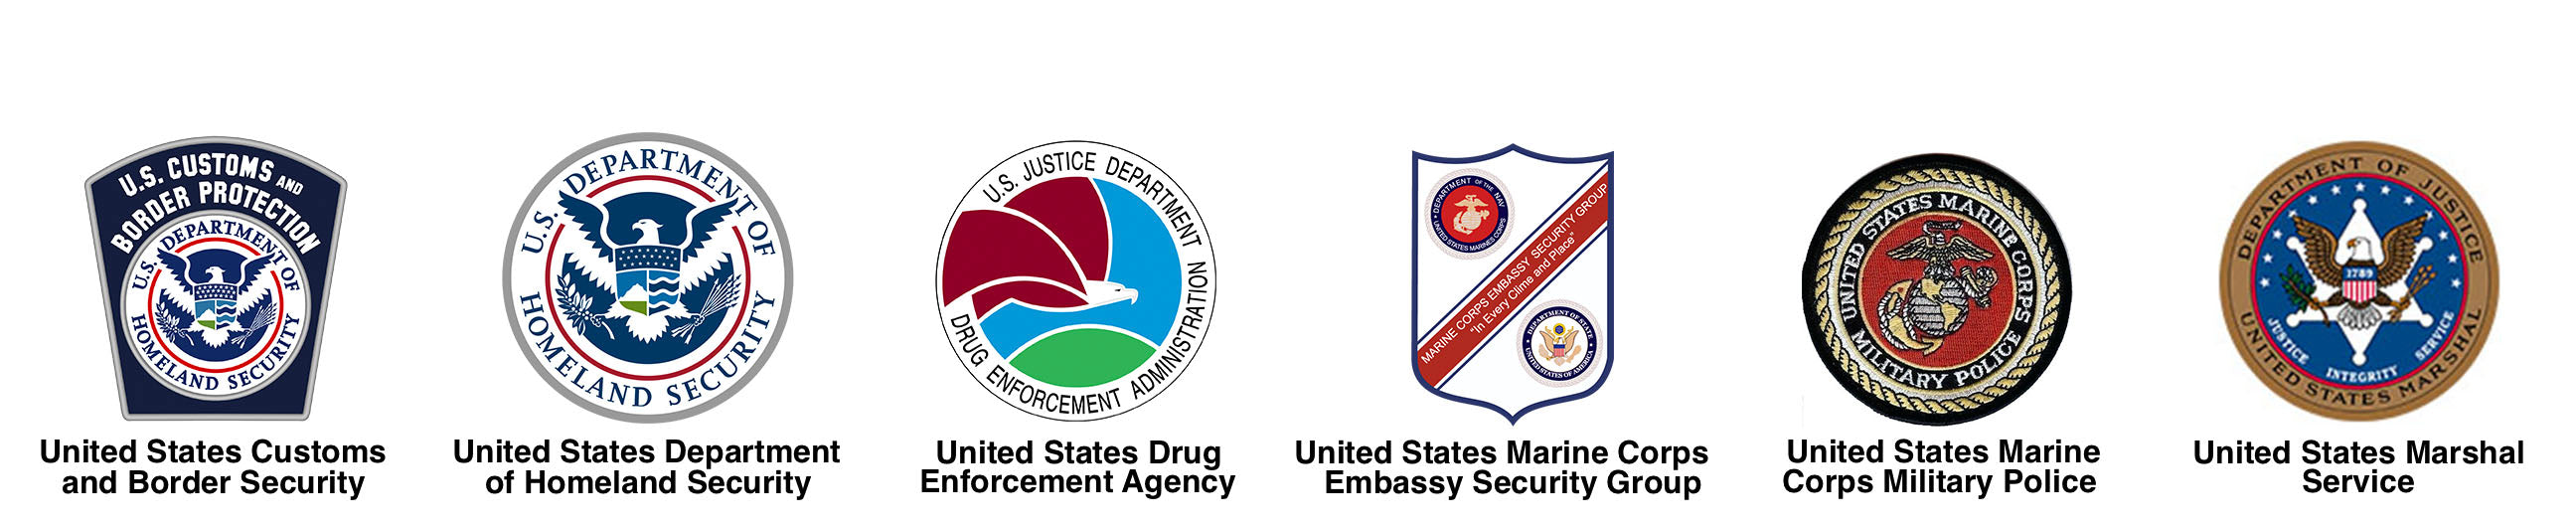 United States Customs and Border Security, United States Department of Homeland Security, United States Drug Enforcement Agency, United States Marine Corps Embassy Security Group, United States Marine Corps Military Police, United States Marshal Service